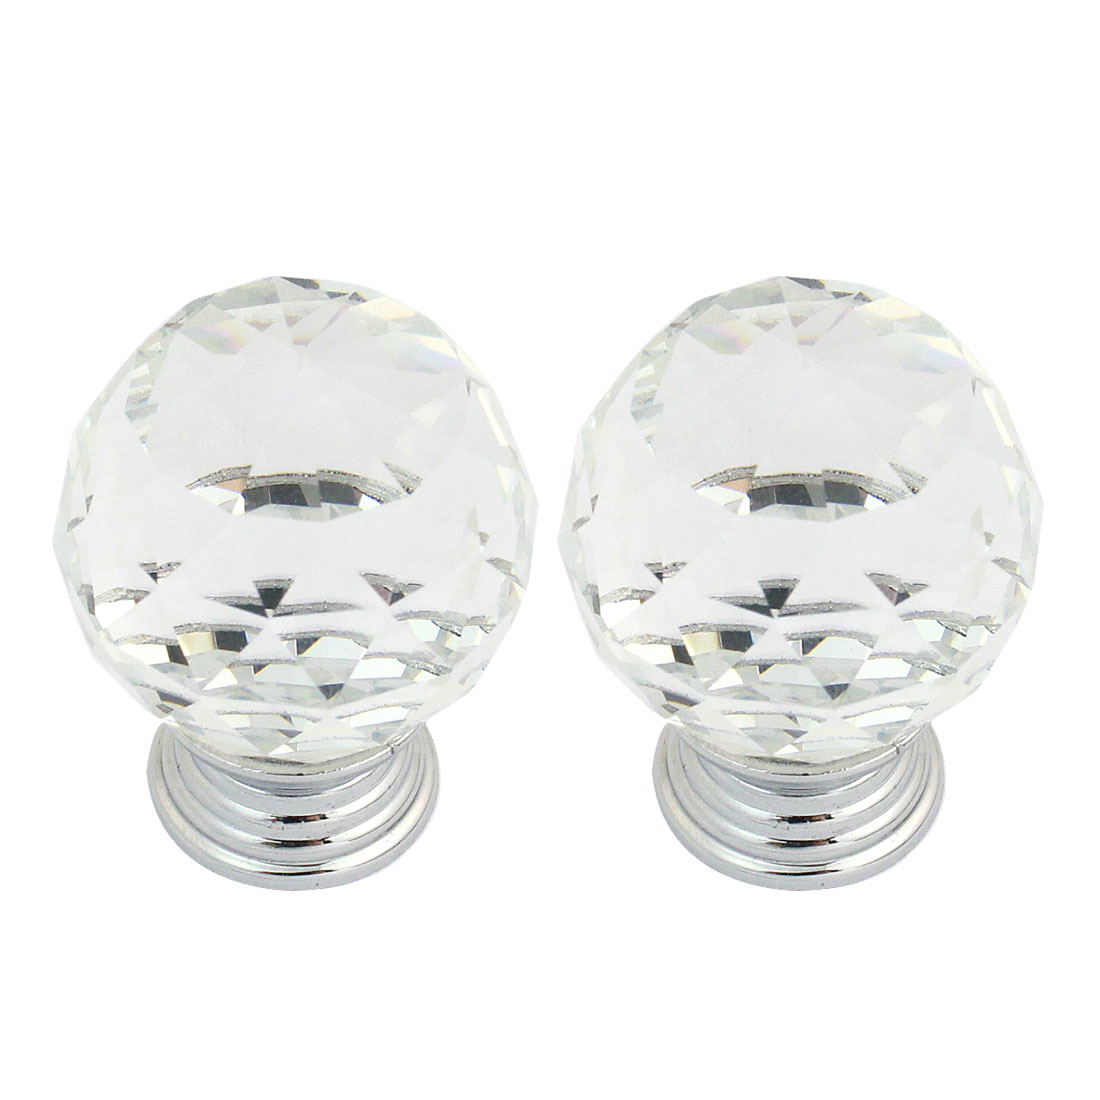 3cm Plastic Crystal Handle Cabinet Cupboard Drawer Door Pull Ball Knob 2 Pcs